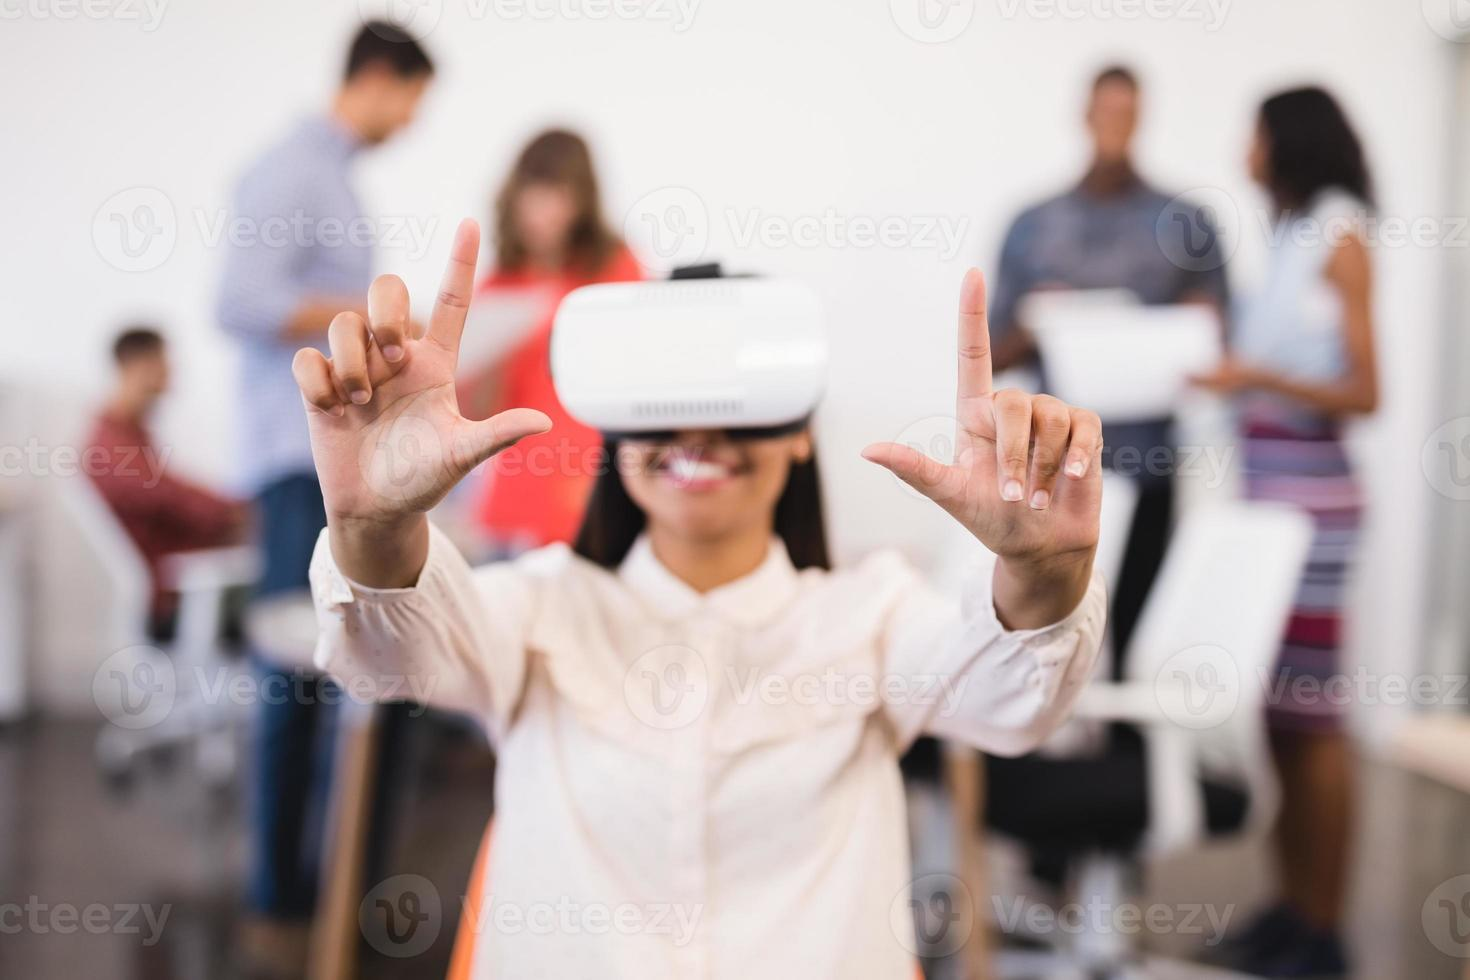 Businesswoman gesturing while using vr glasses photo